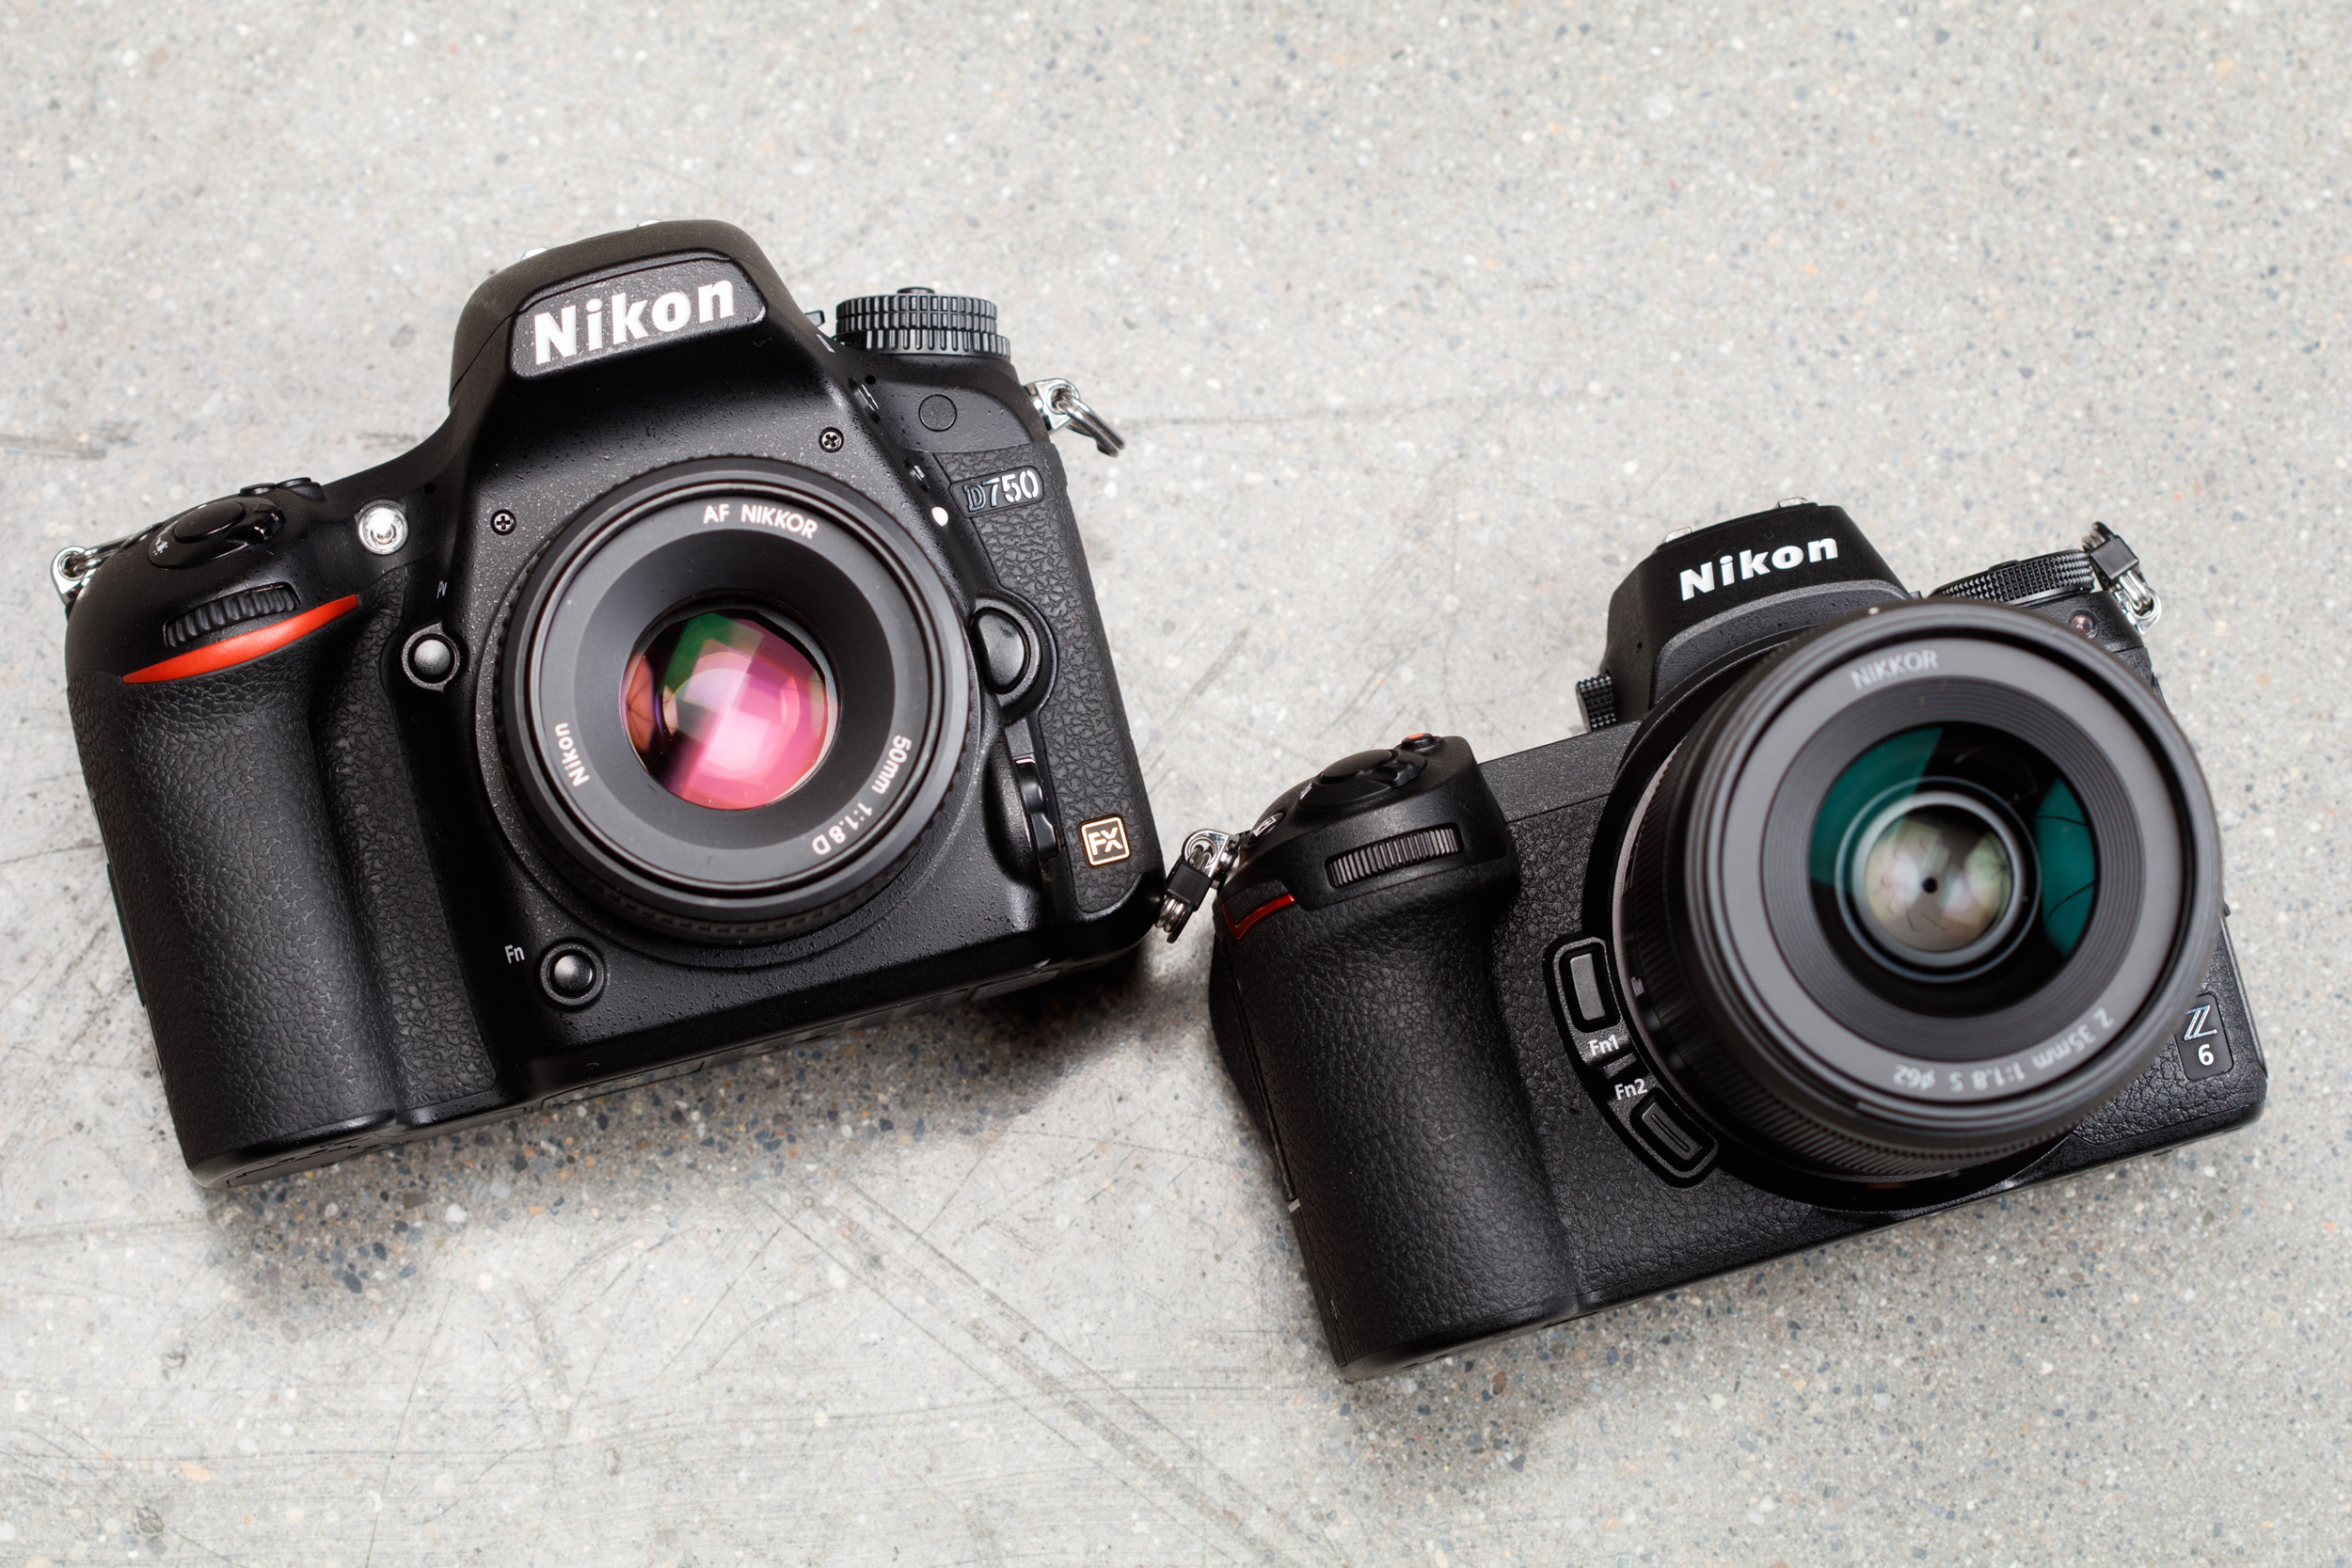 NikonD750 on the left, next to the Nikon Z6 on the right, photographed by Dan Bracaglia